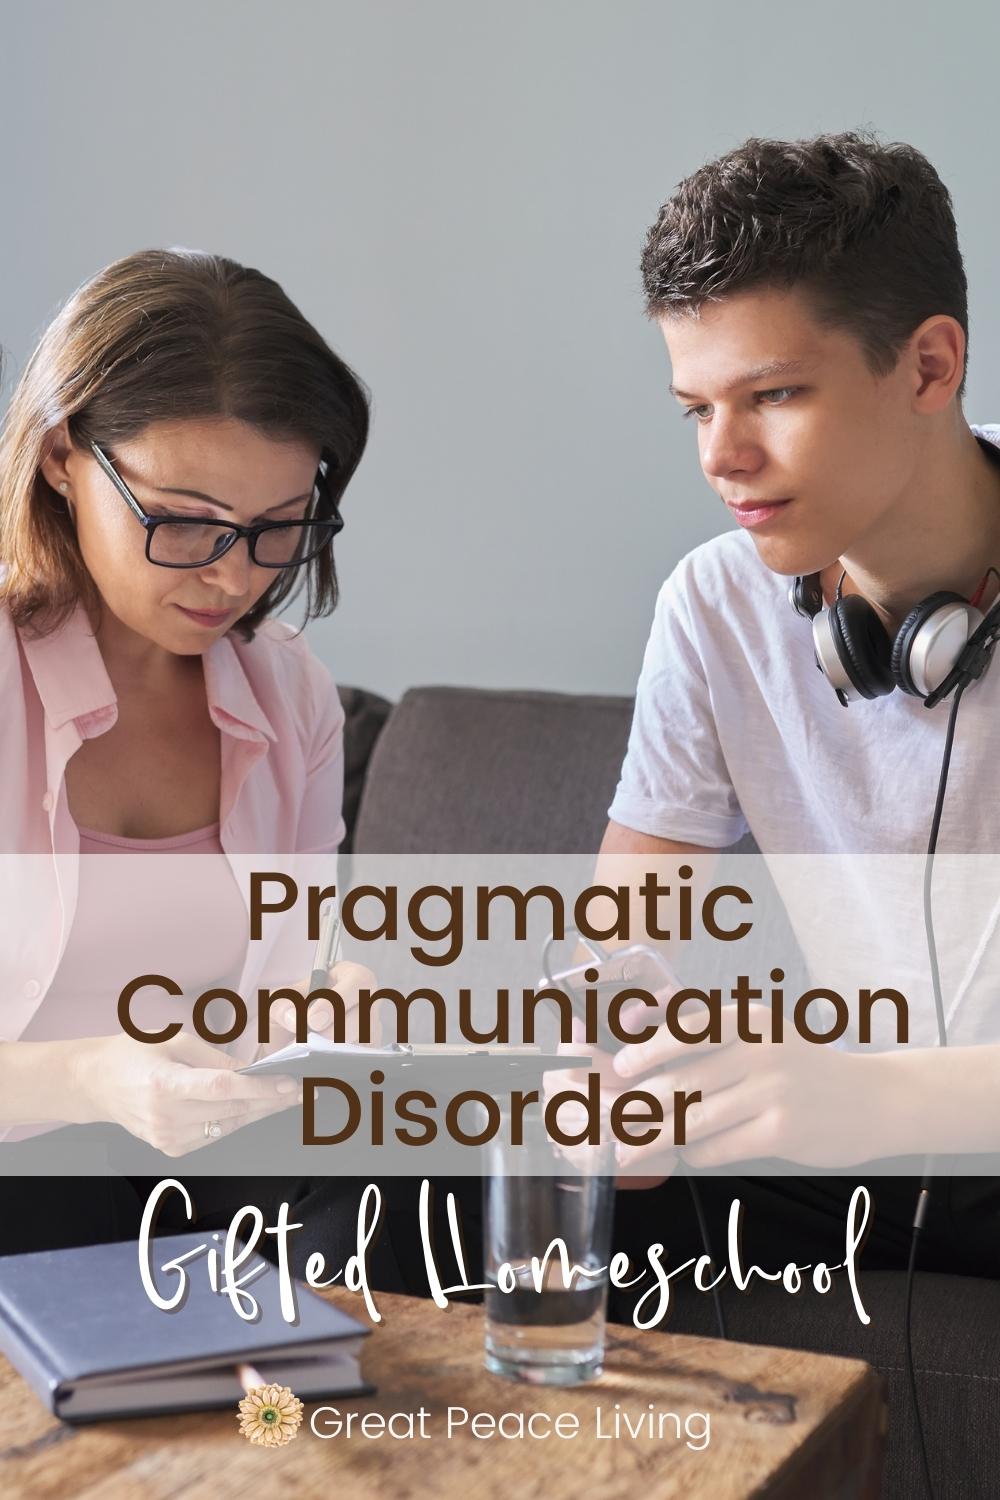 Finding Homeschool Help with Speech Therapy for Pragmatic Communication Disorder | Great Peace Living #homeschool #homeschooling #homeschoolmom #ihsnet #gifted #giftedhomeschool #gtchat #speechtherapy #spd #communicationdisorder